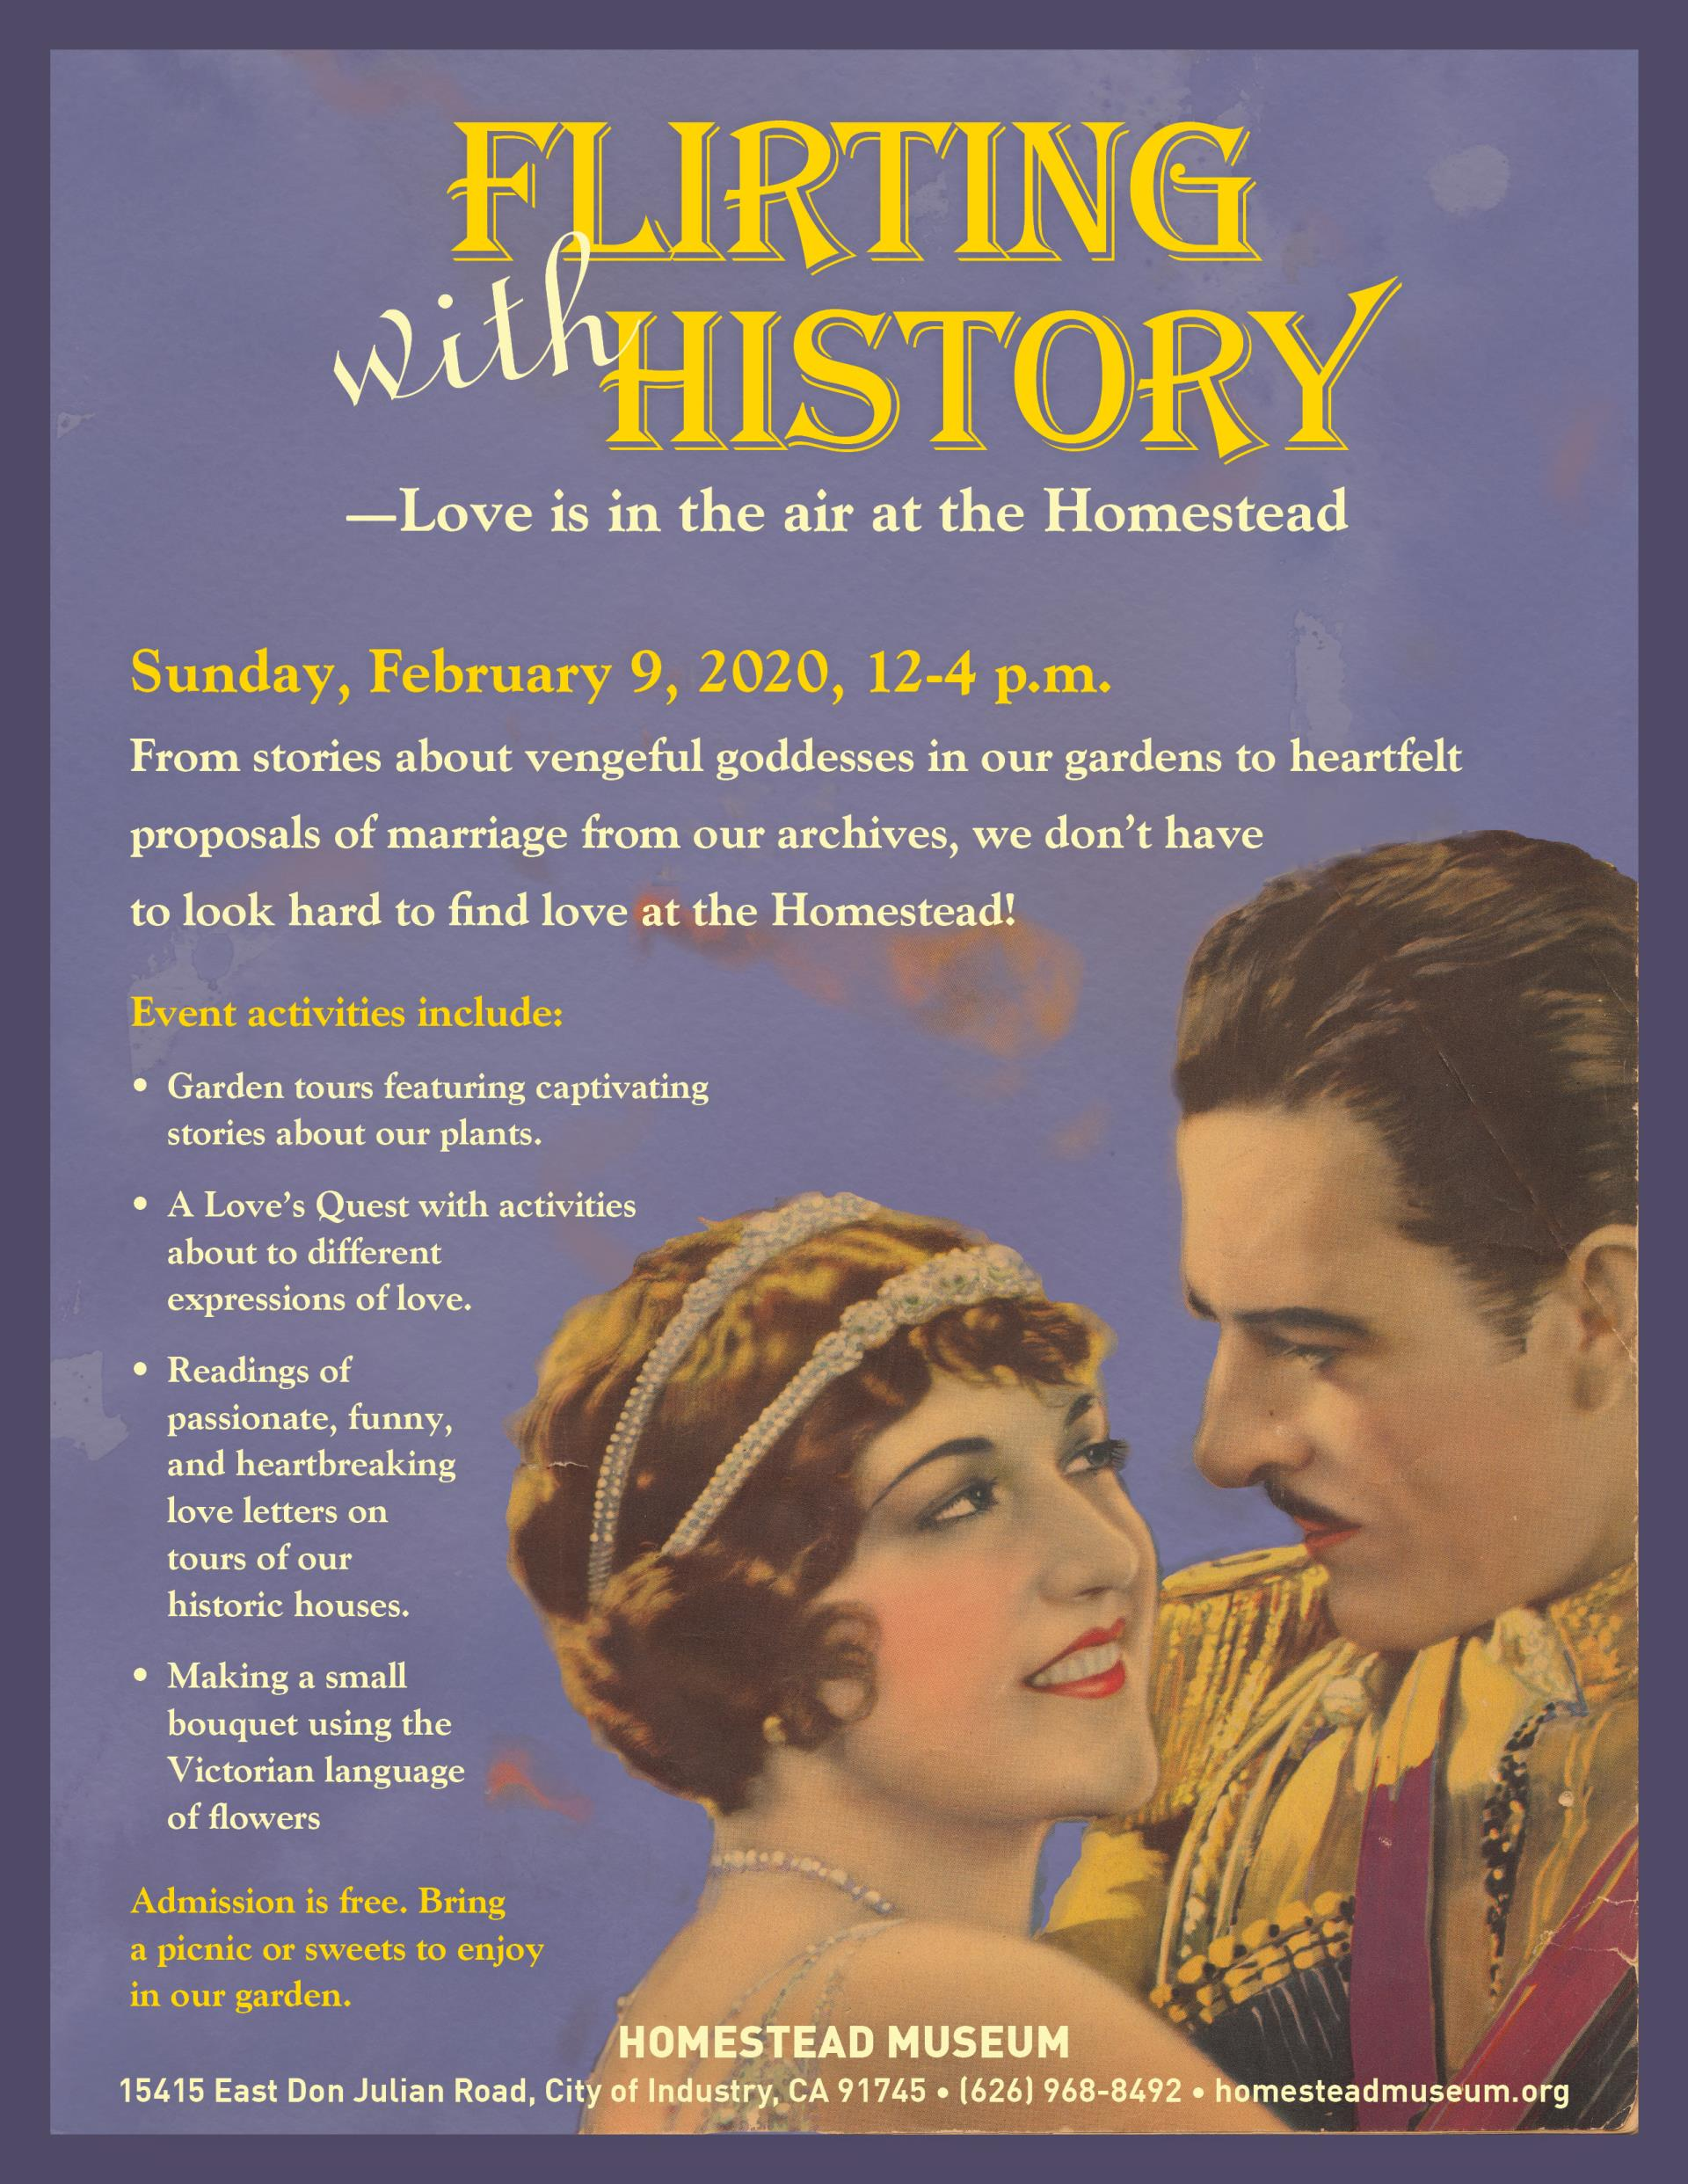 Flirting with History 2020 flyer